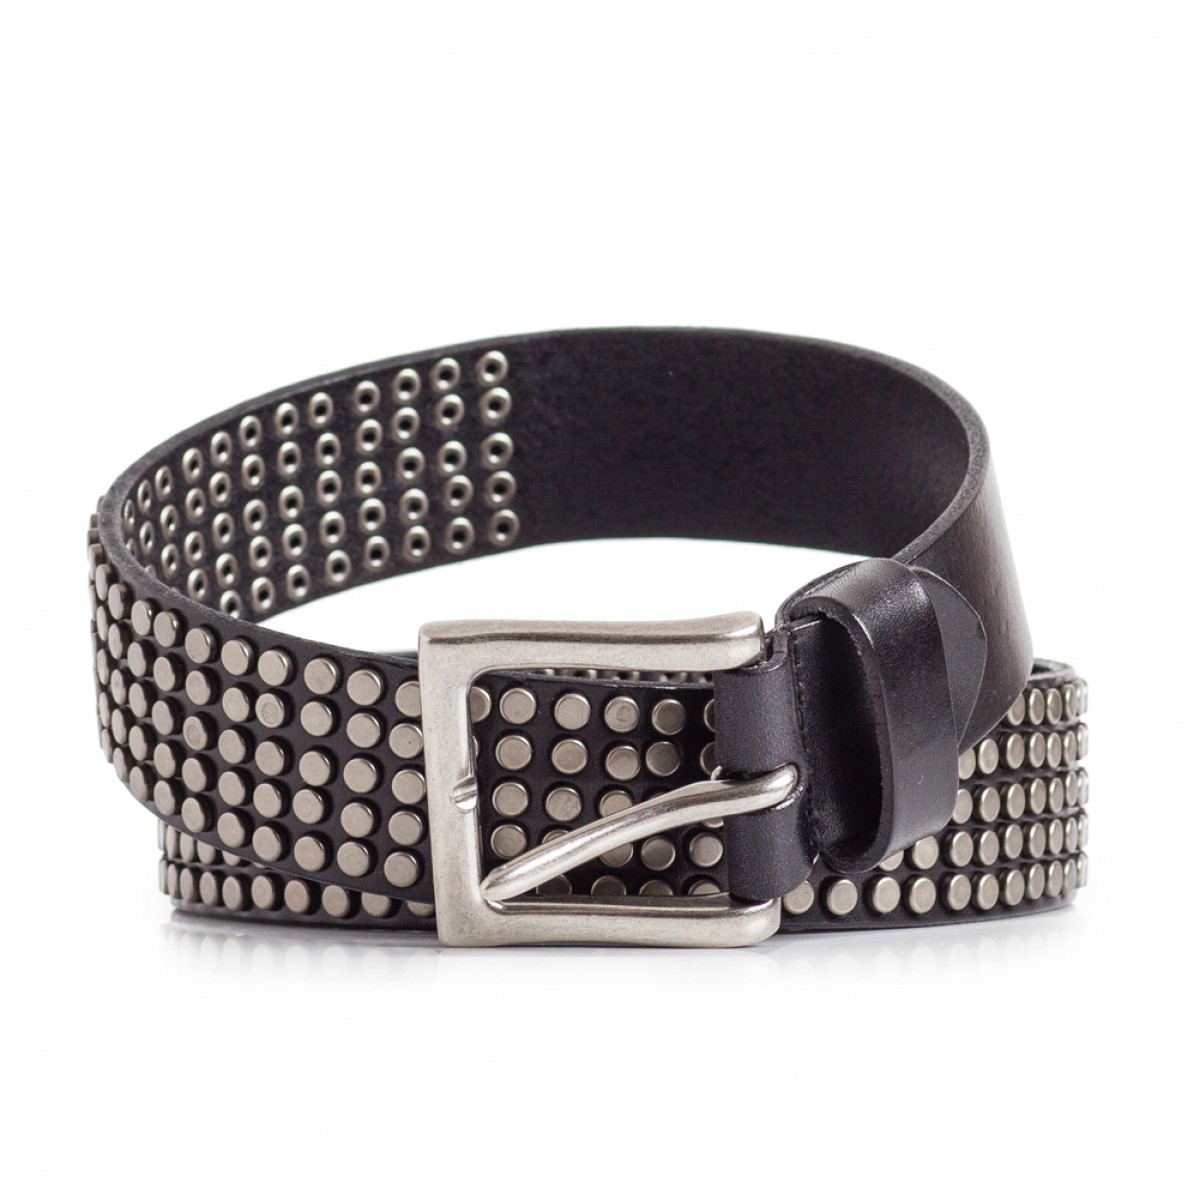 studded belt super cool black sizes 30 44in laticci